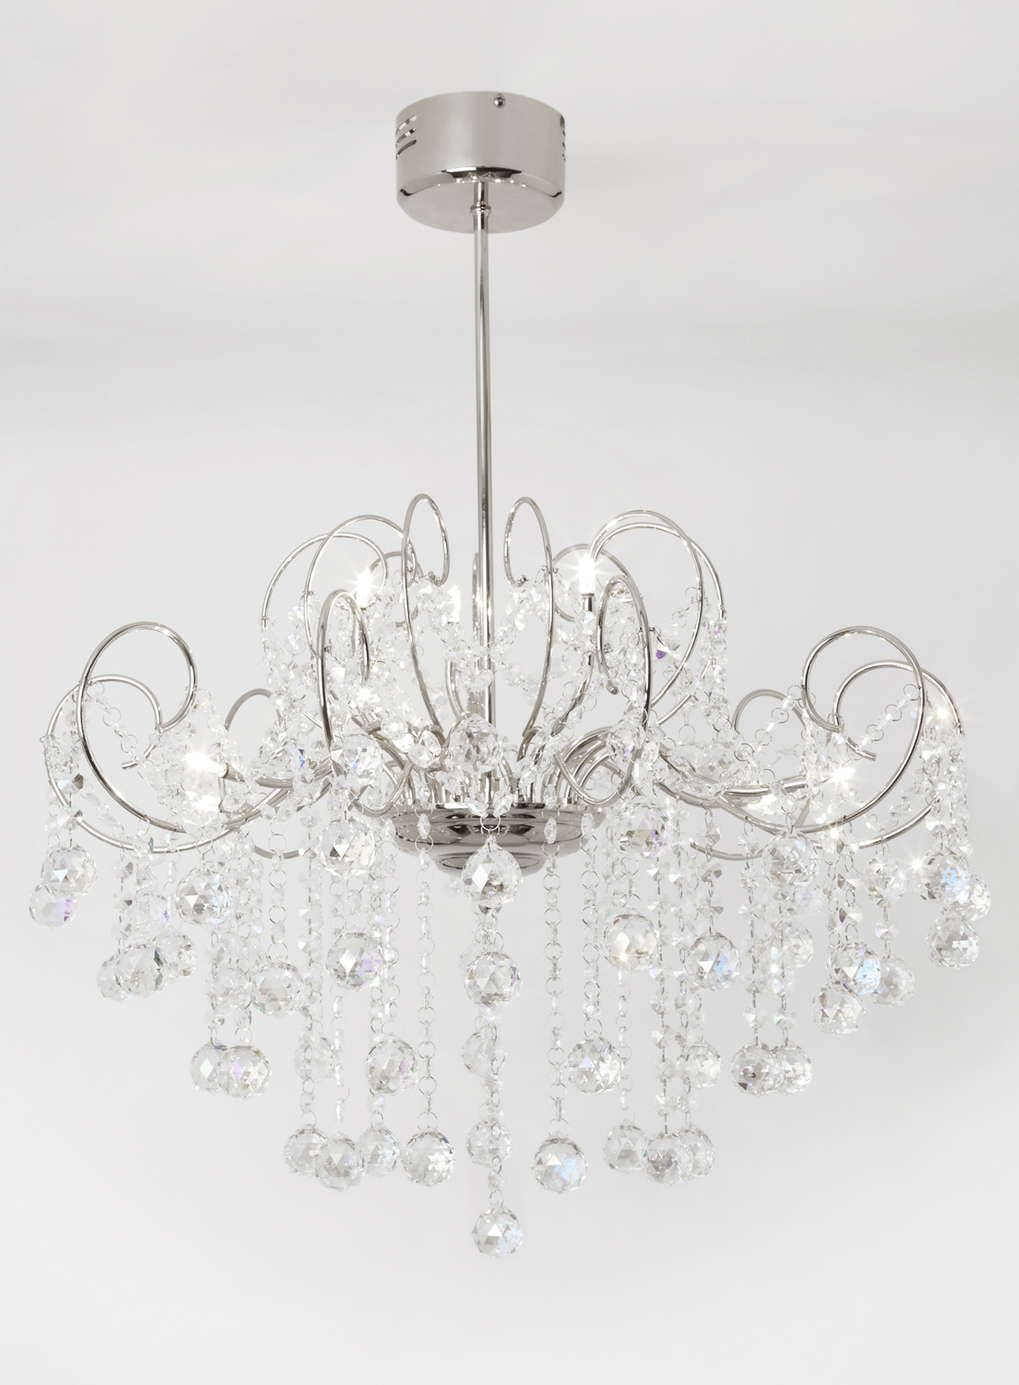 Clear beni chandelier bhs lighting pinterest chandeliers clear beni chandelier bhs arubaitofo Image collections